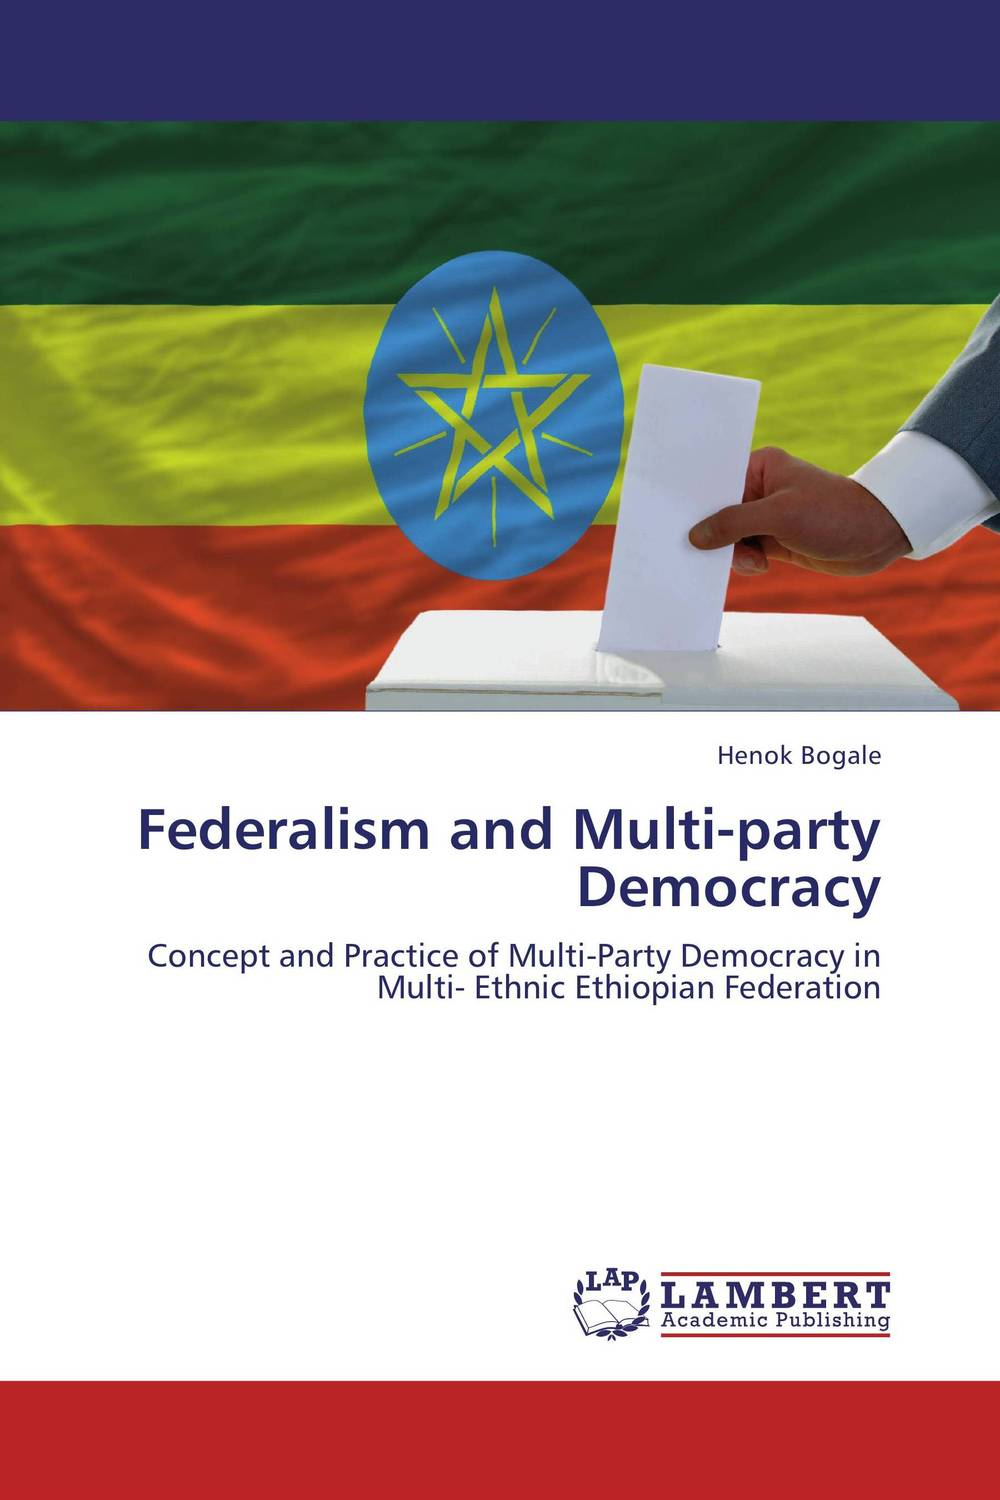 Фото Federalism and Multi-party Democracy cervical cancer in amhara region in ethiopia